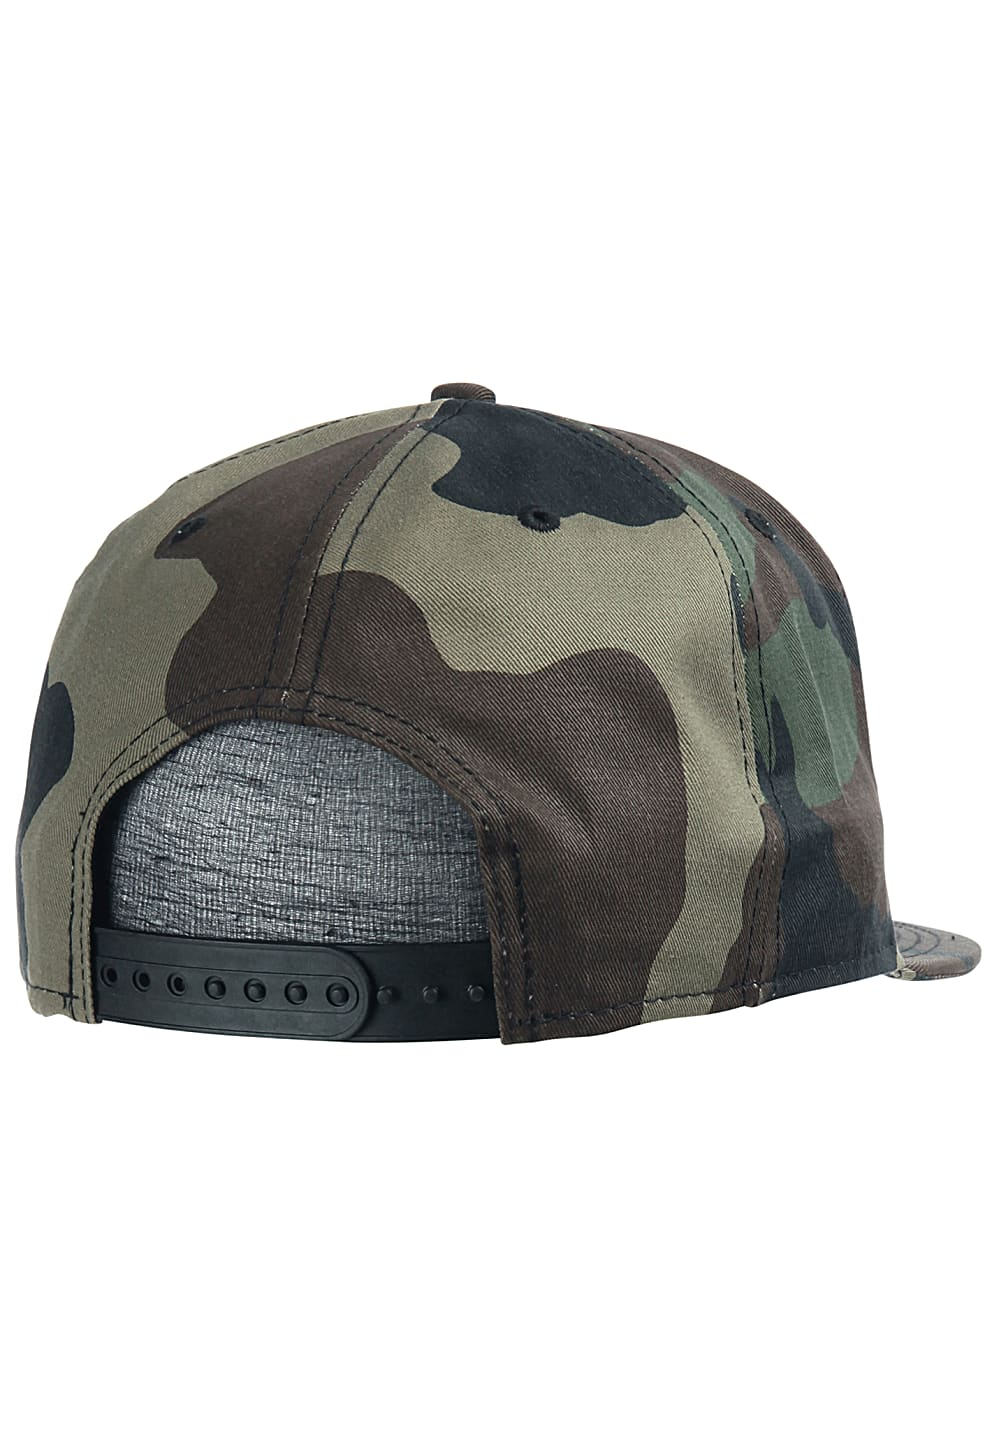 7008c4e0 NEW Era 9Fifty Script Patch - Snapback Cap - Camo - Planet Sports